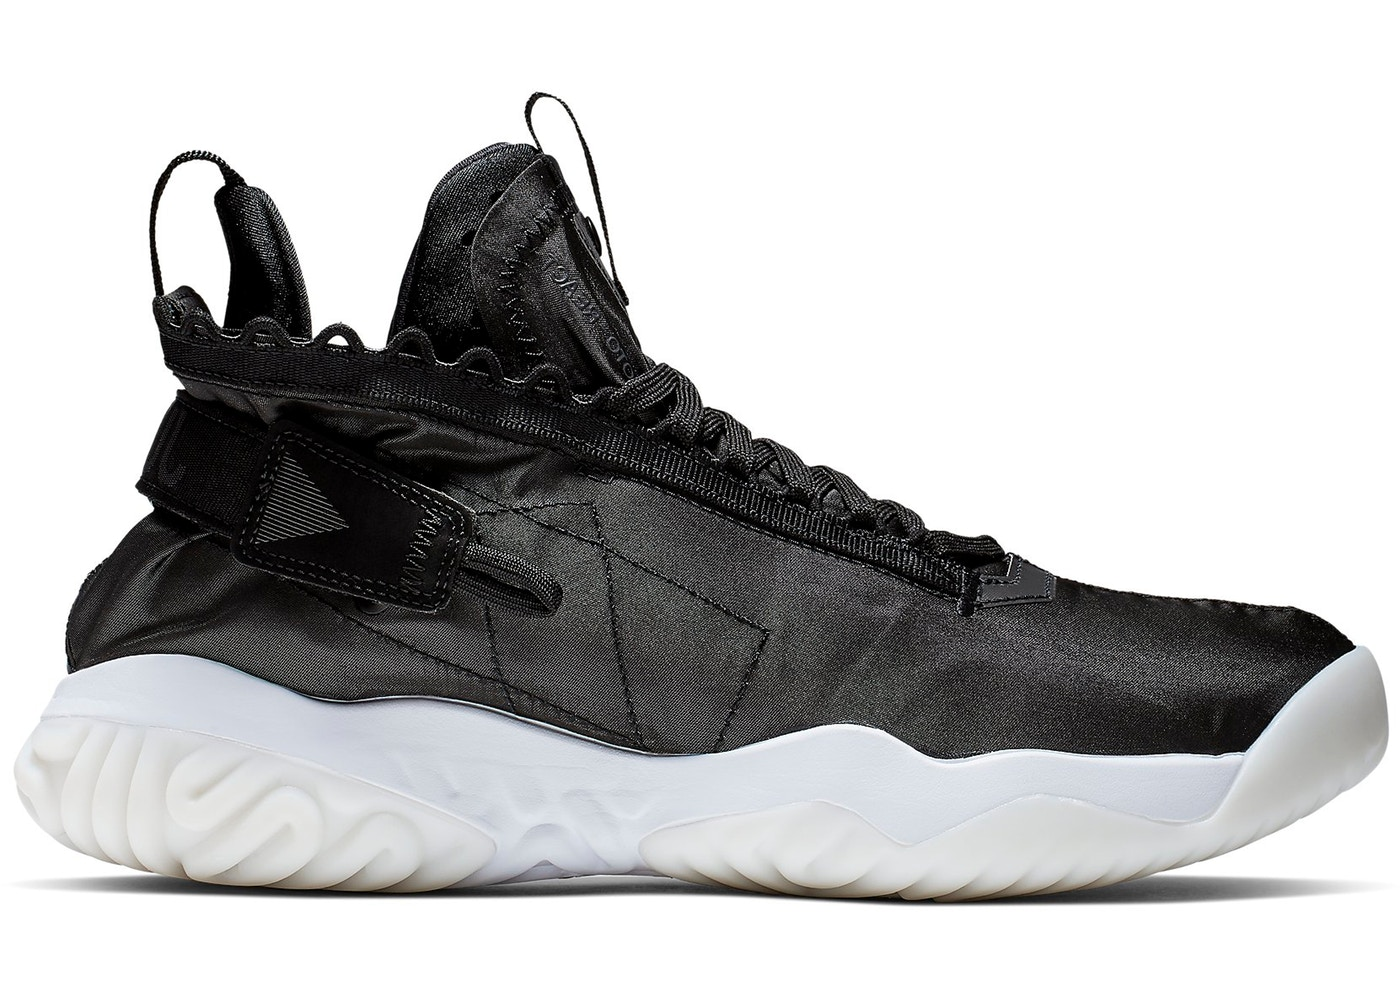 187cb5524ba Sell. or Ask. Size: 9.5. View All Bids. Jordan Proto React Black White